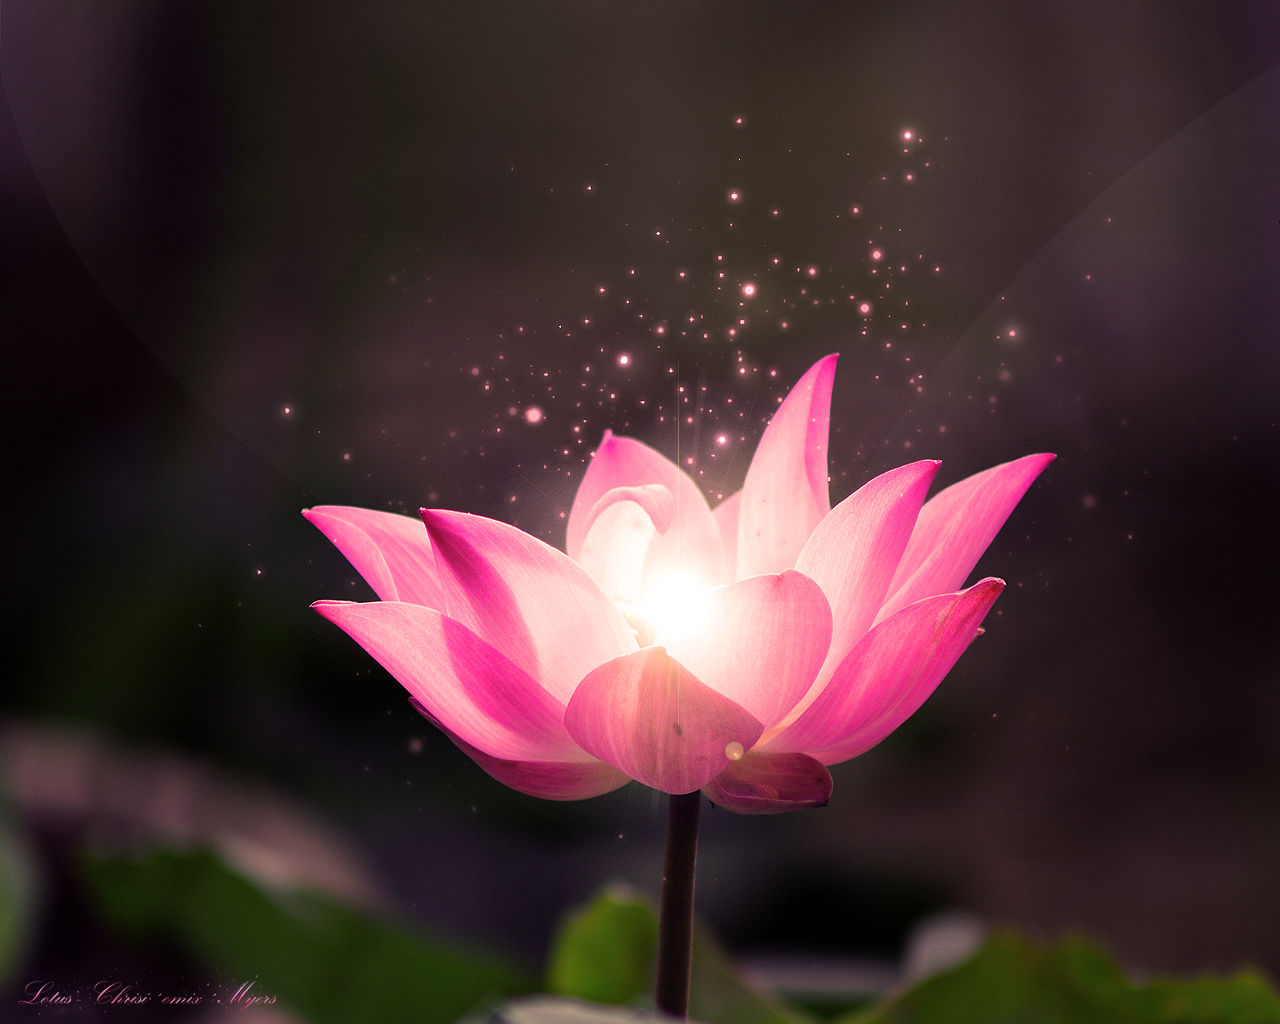 free lotus flower wallpaper lotus dream wallpaper lotus flower hd 1280x1024